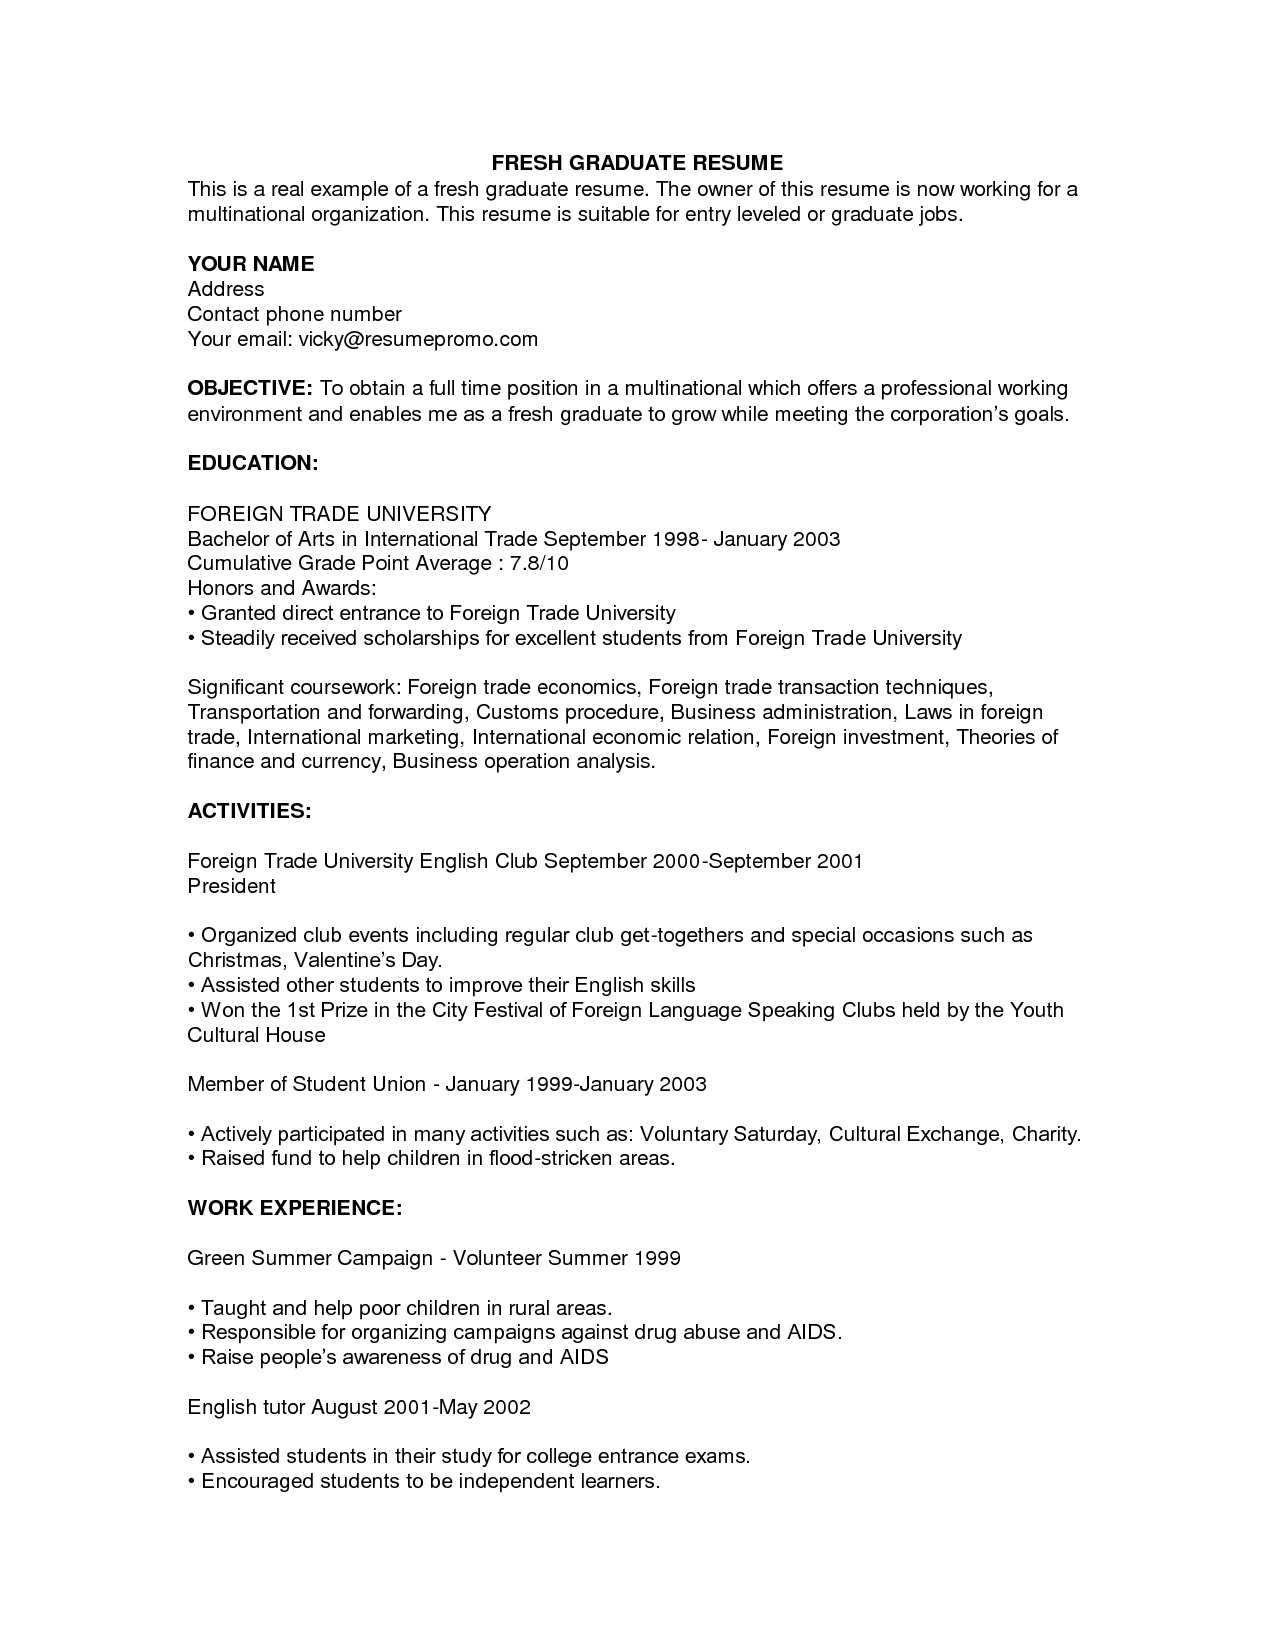 sample resume for fresh graduate without work experience